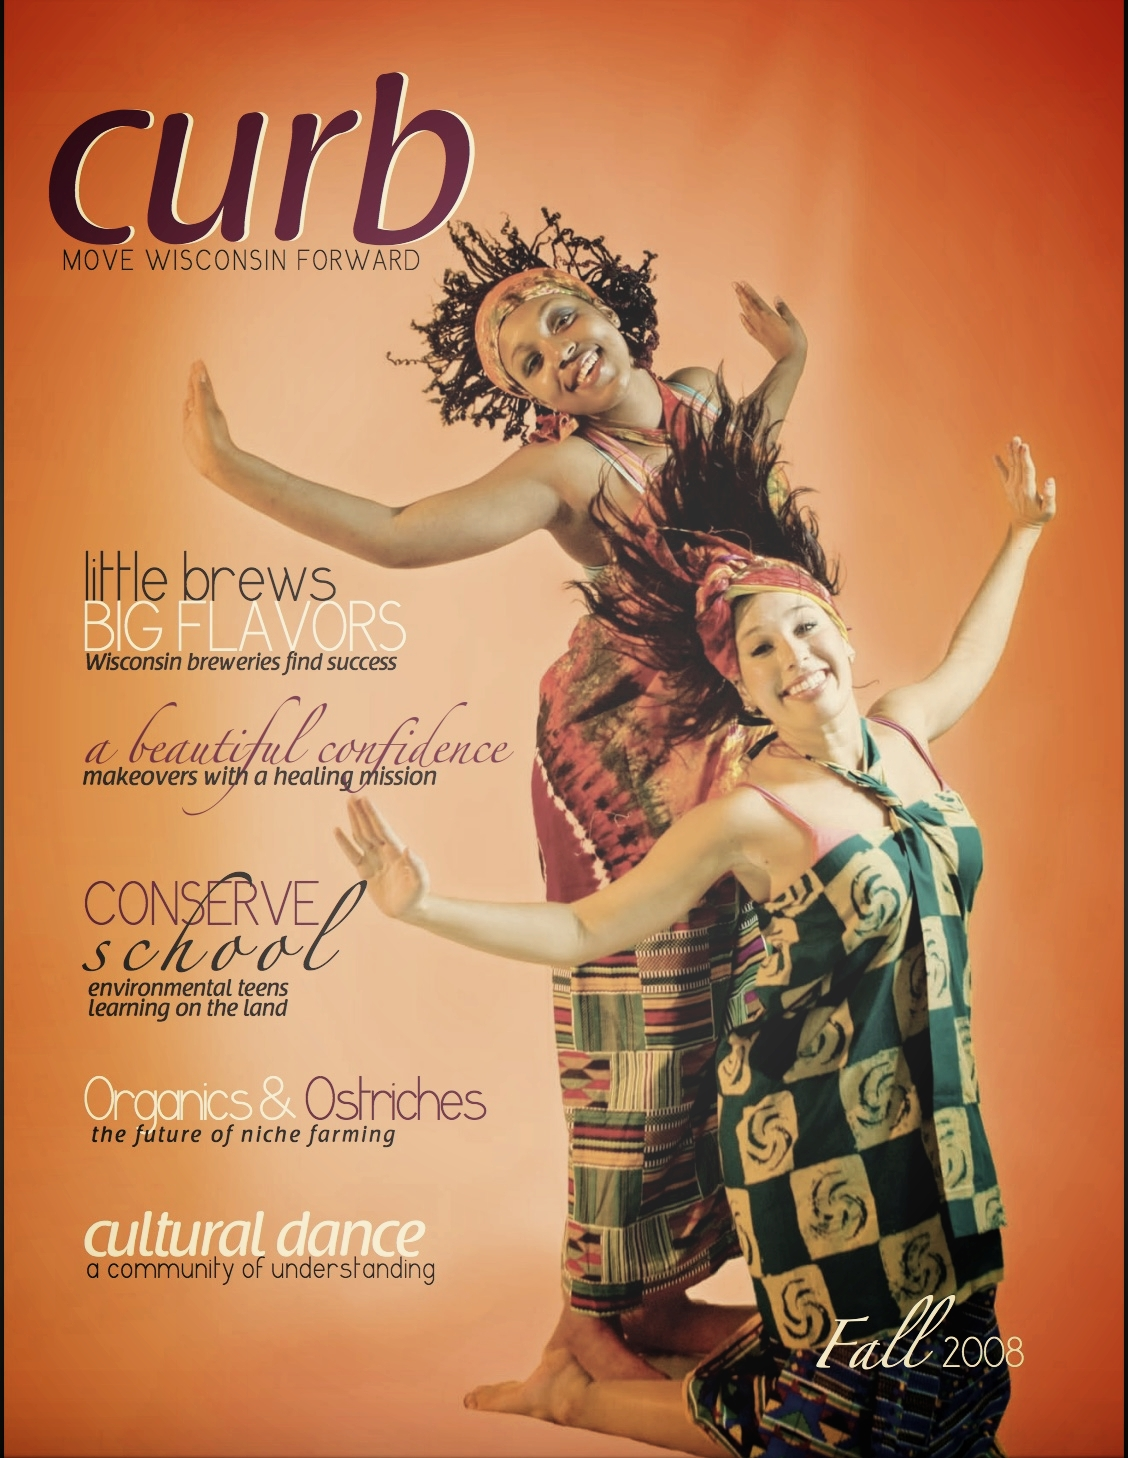 I served as Managing Editor of    Curb Magazine   , the UW-Madison School of Journalism's student-run and edited magazine, in 2008. In addition to coordinating daily activities, article writing, editing, and photo shoots of the magazine, I   contributed an article  .